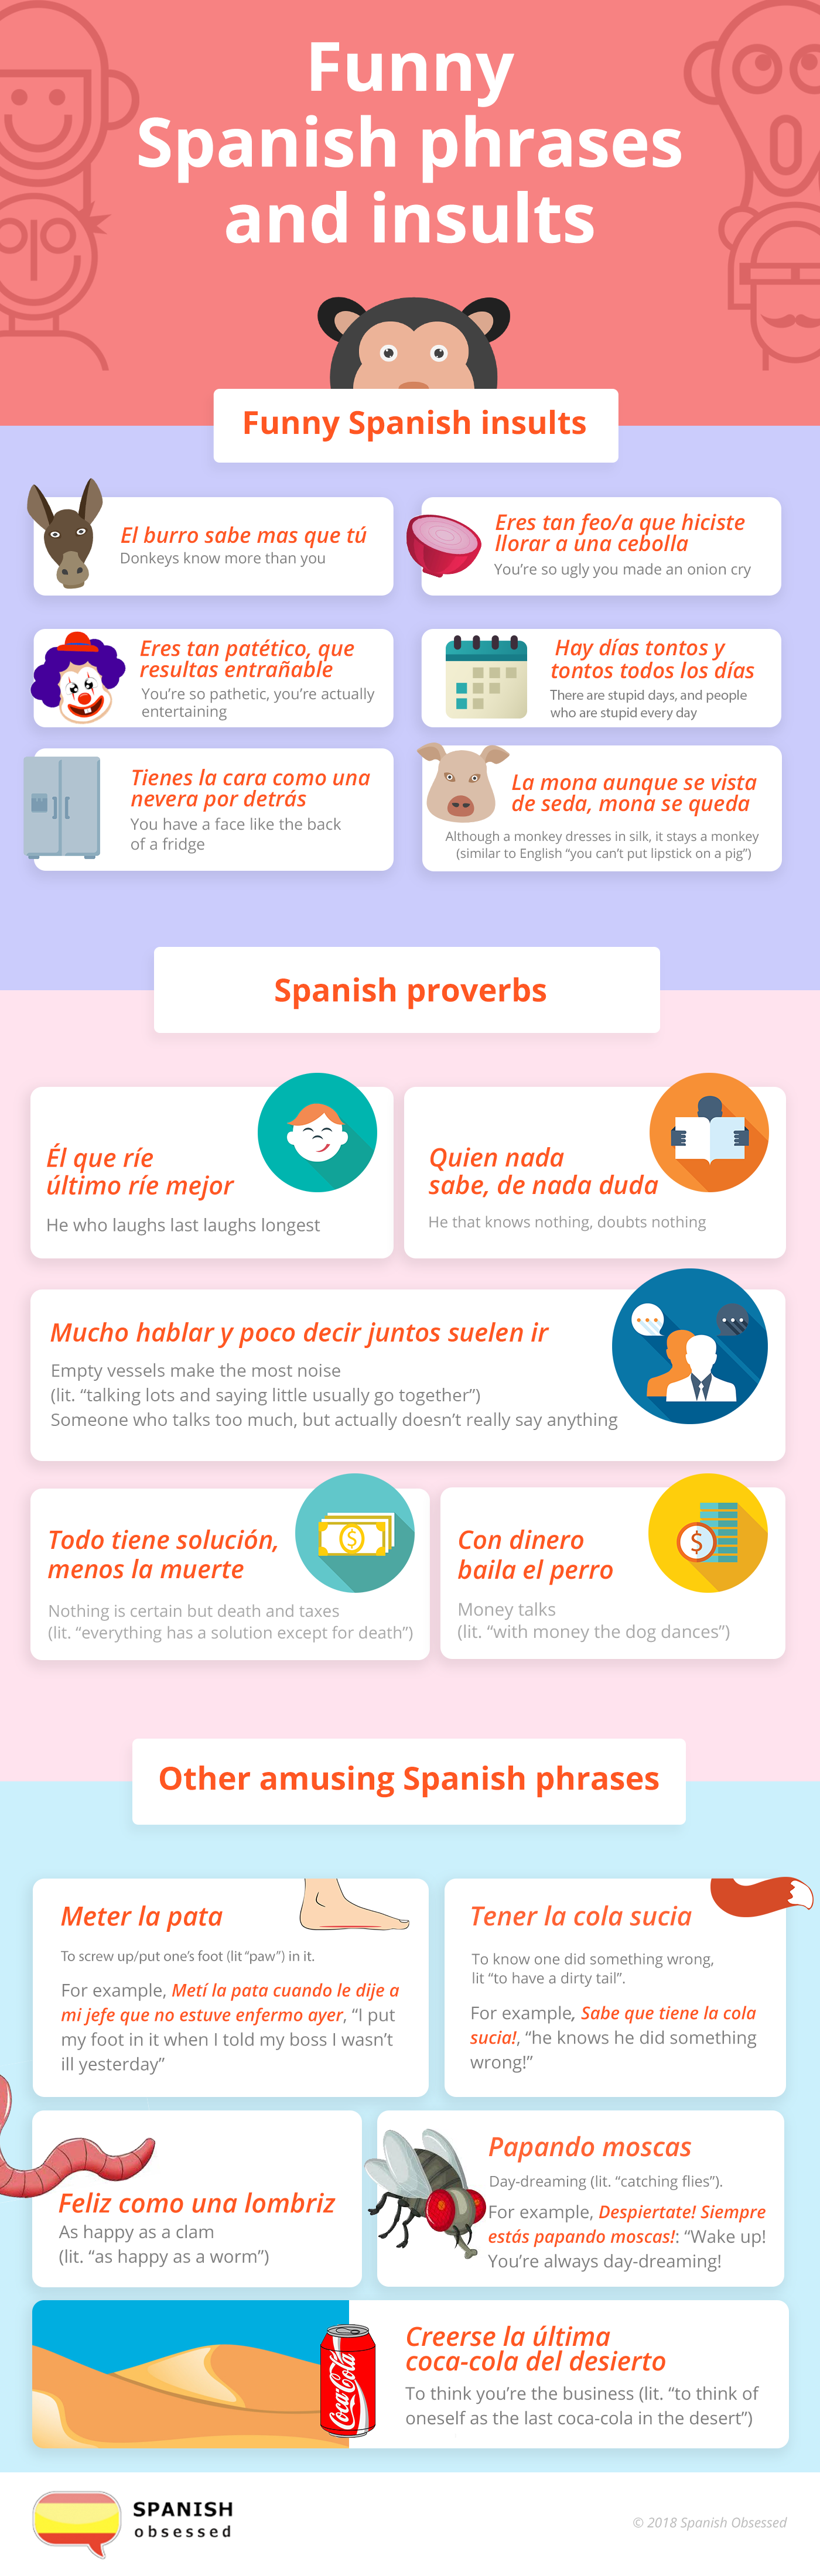 Funny Spanish Phrases and Insults | Spanish Obsessed